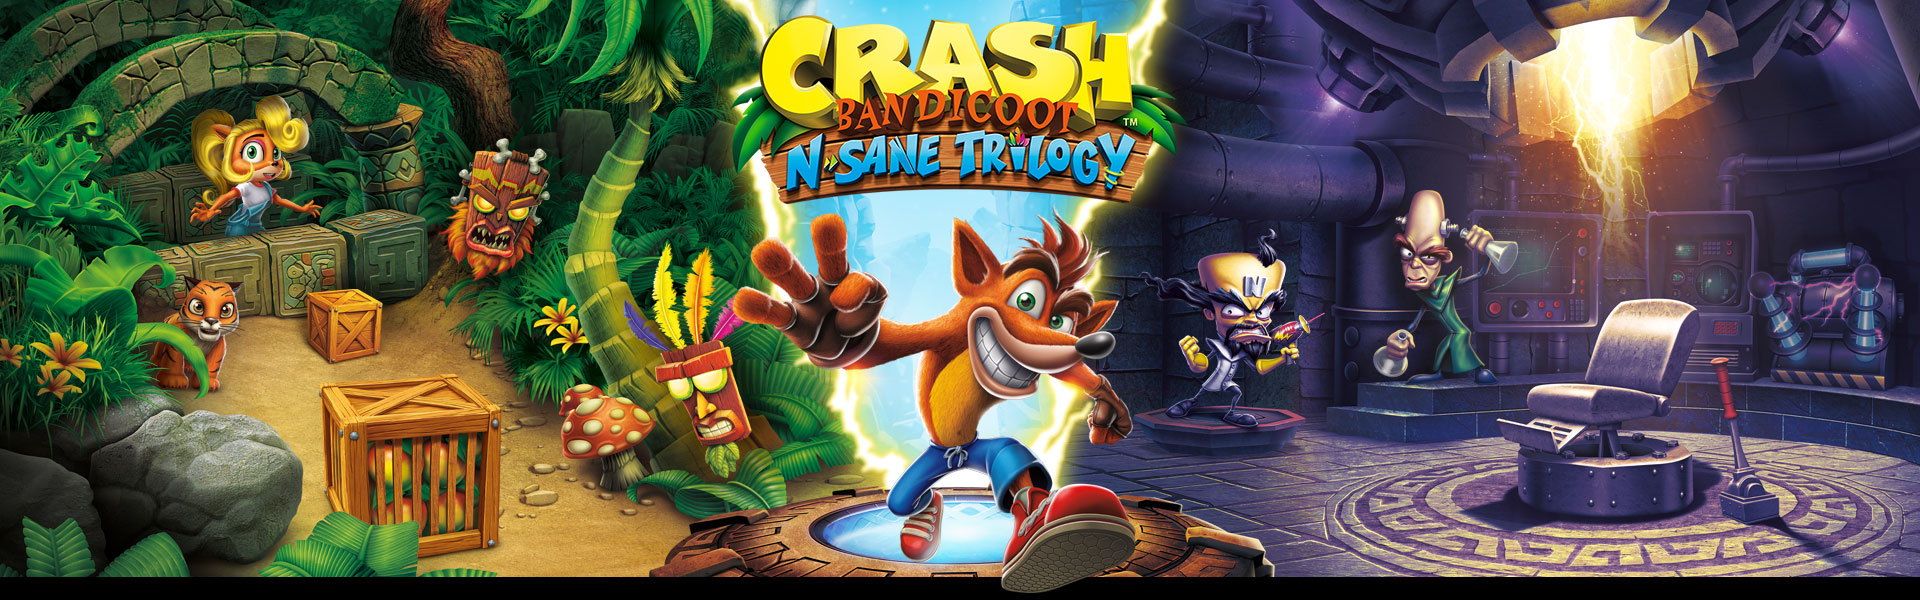 Crash Bandicoot Insane Trilogy, Crash steht zwischen Insanity Beach and Cortex Labor